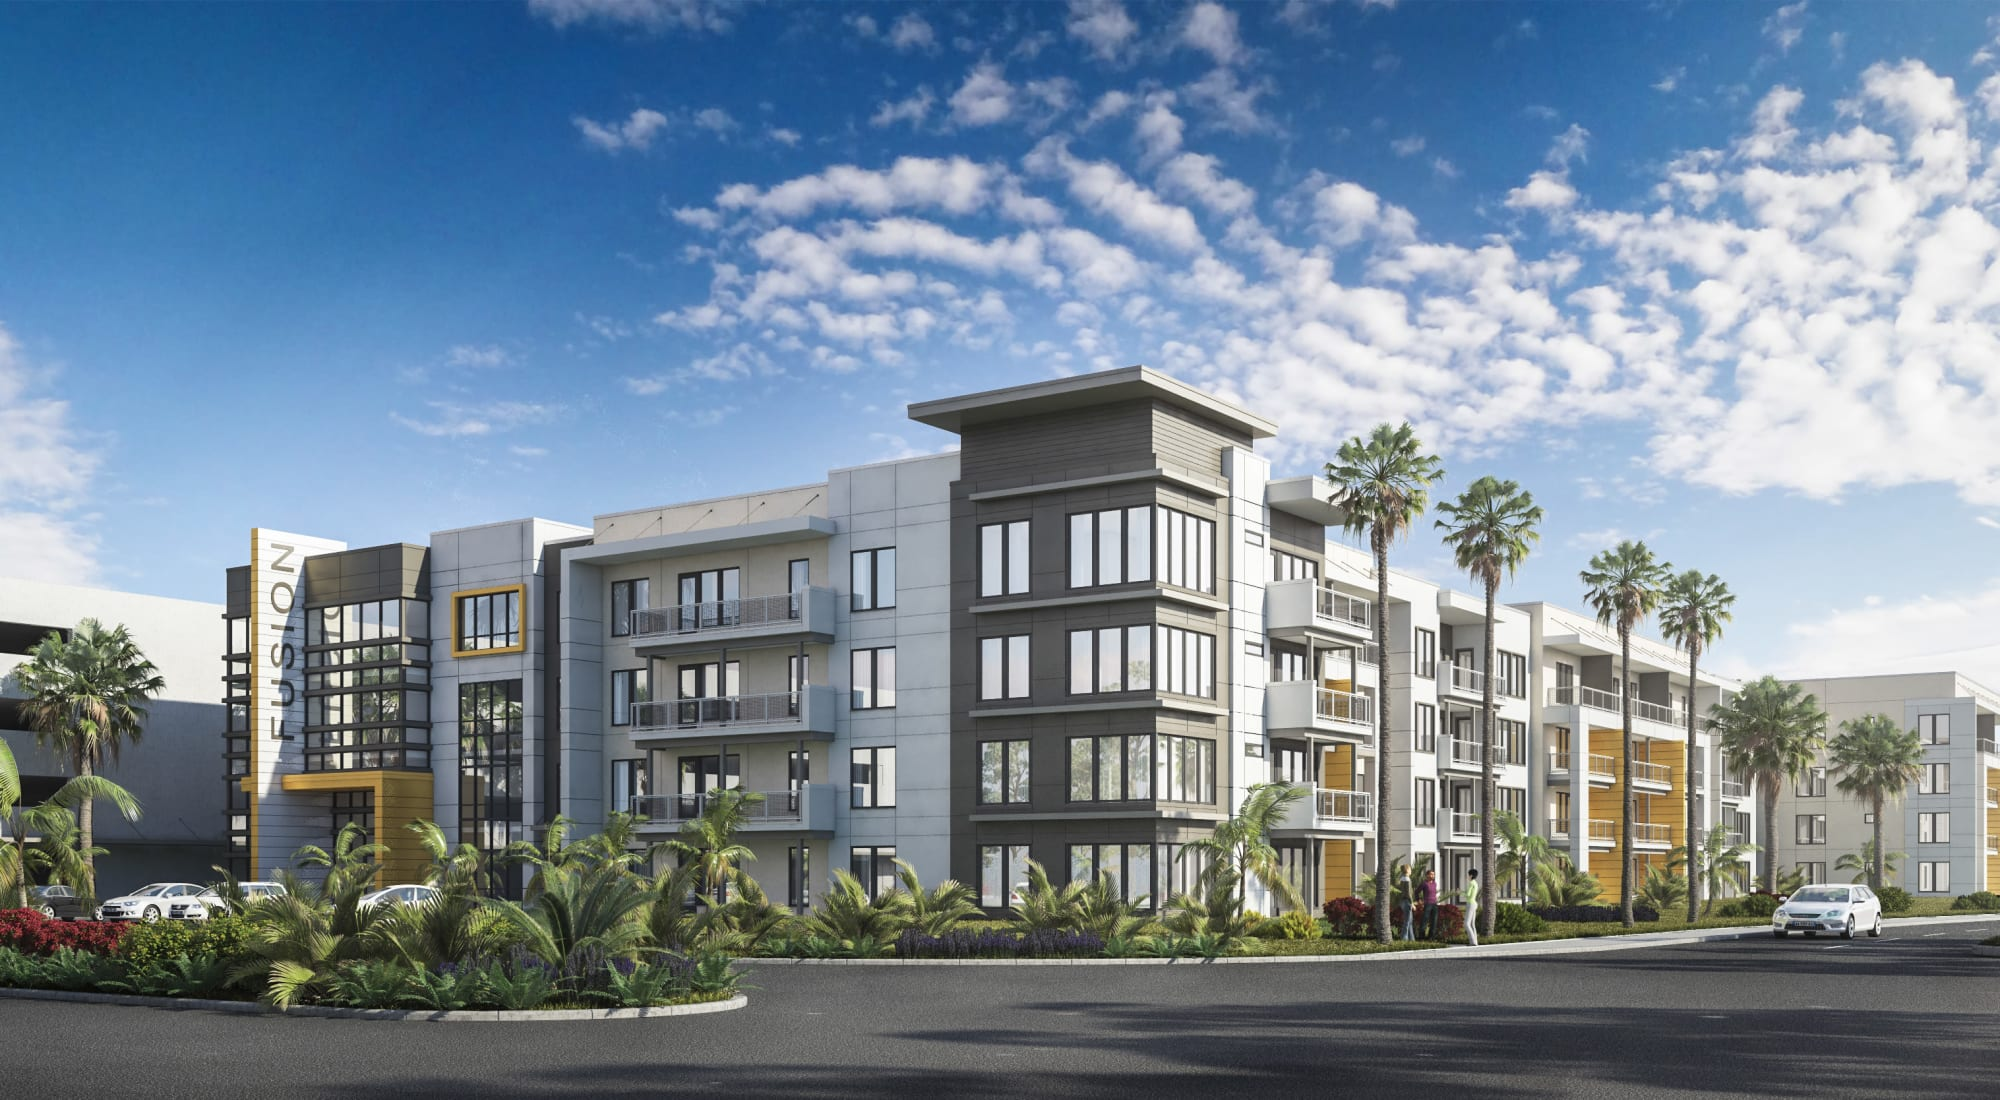 Rendering of Fusion apartments in Jacksonville, Florida